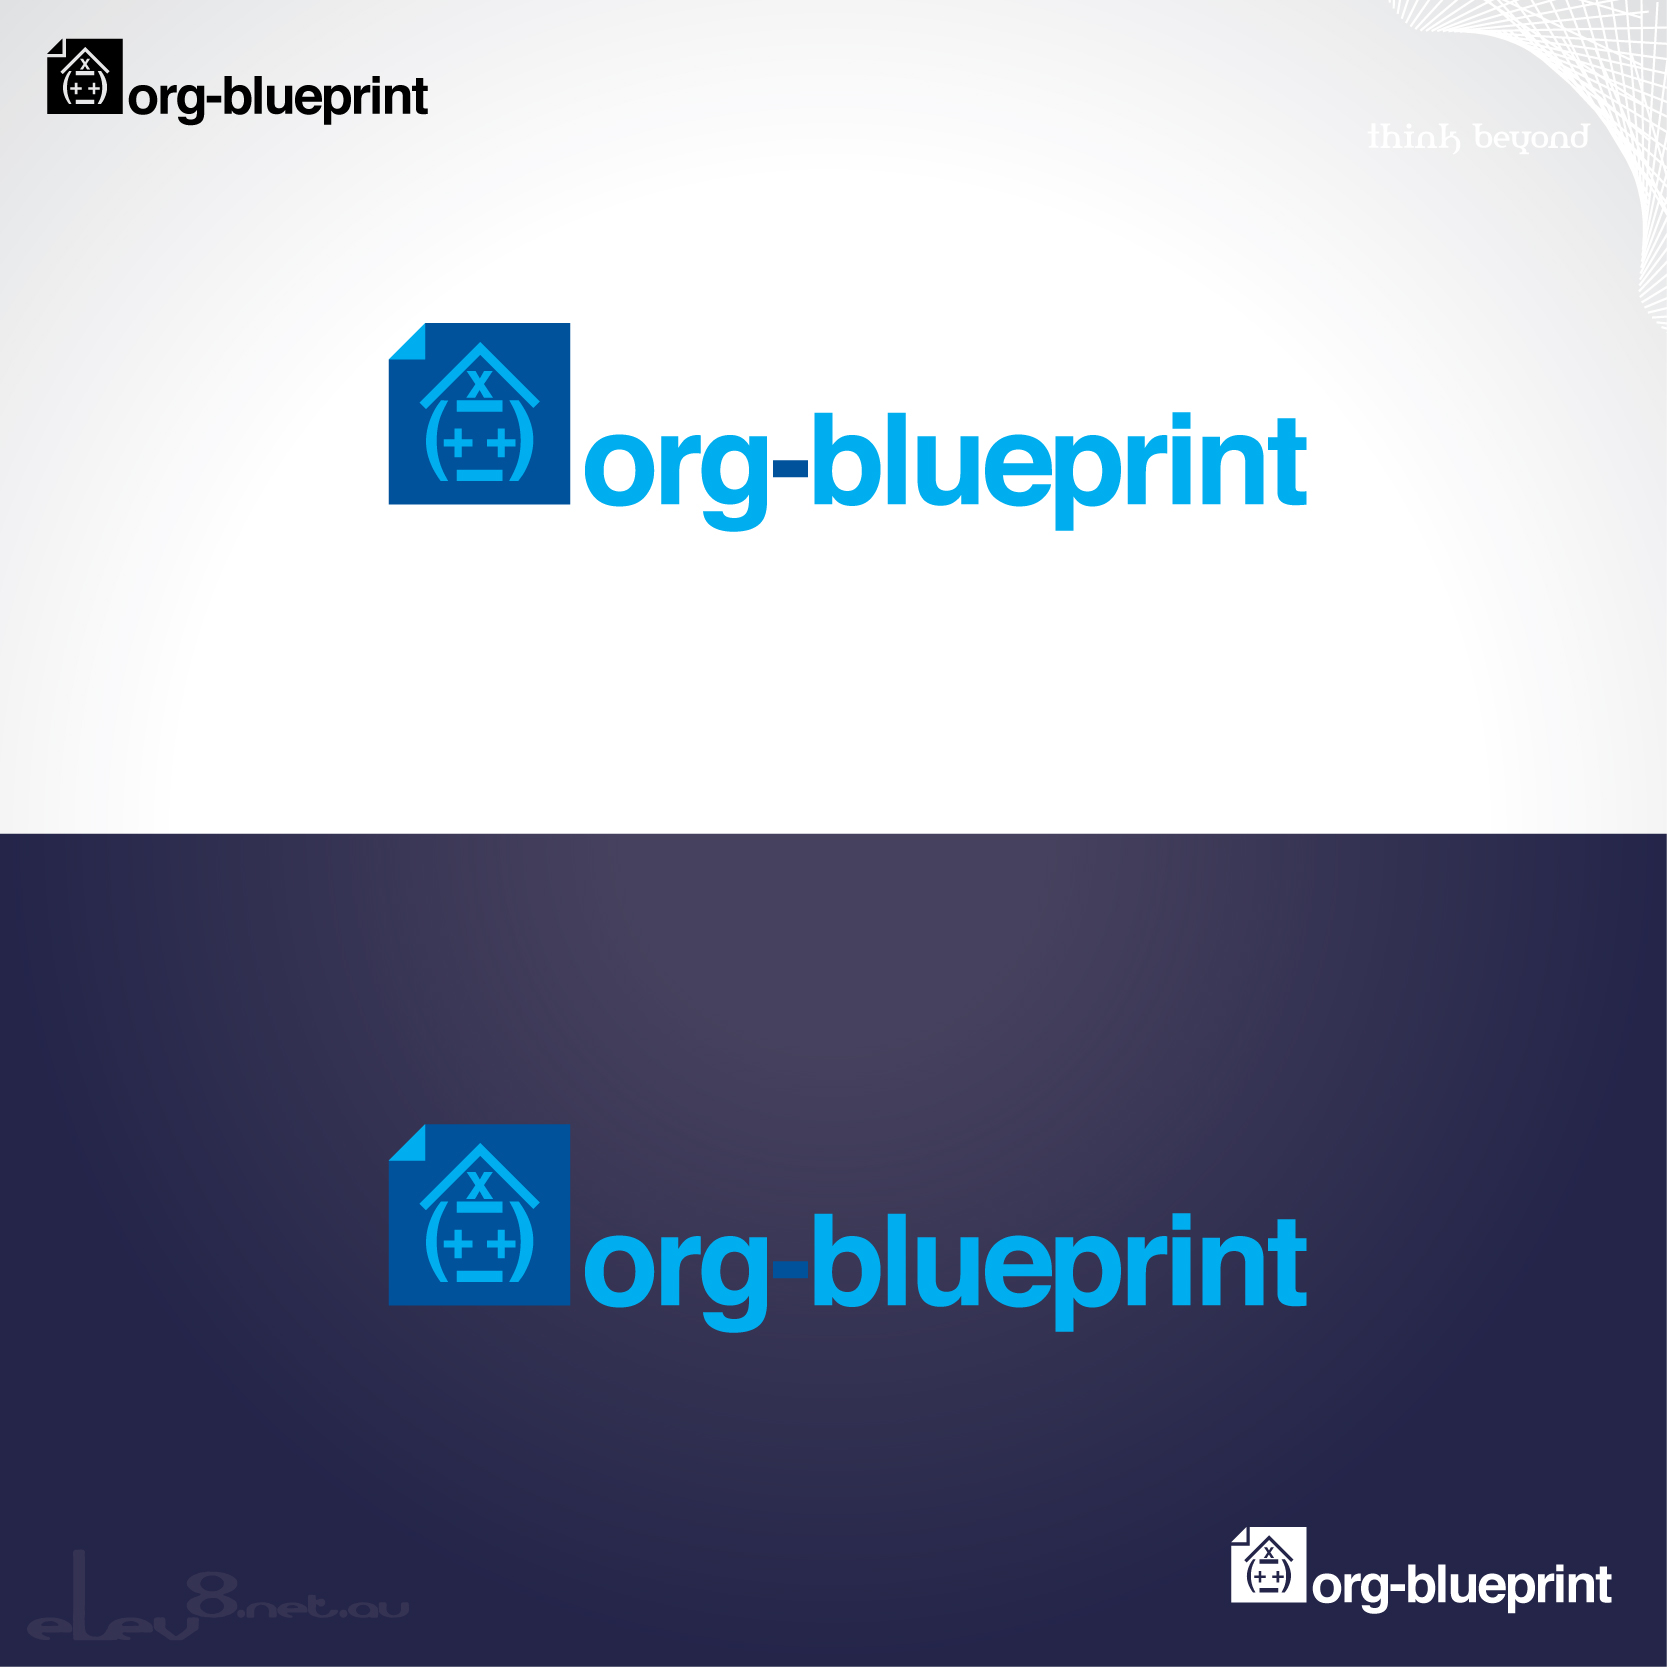 Consulting logo design for org blueprint by elev8 design 15190 consulting logo design for org blueprint in united states design 15190 malvernweather Choice Image